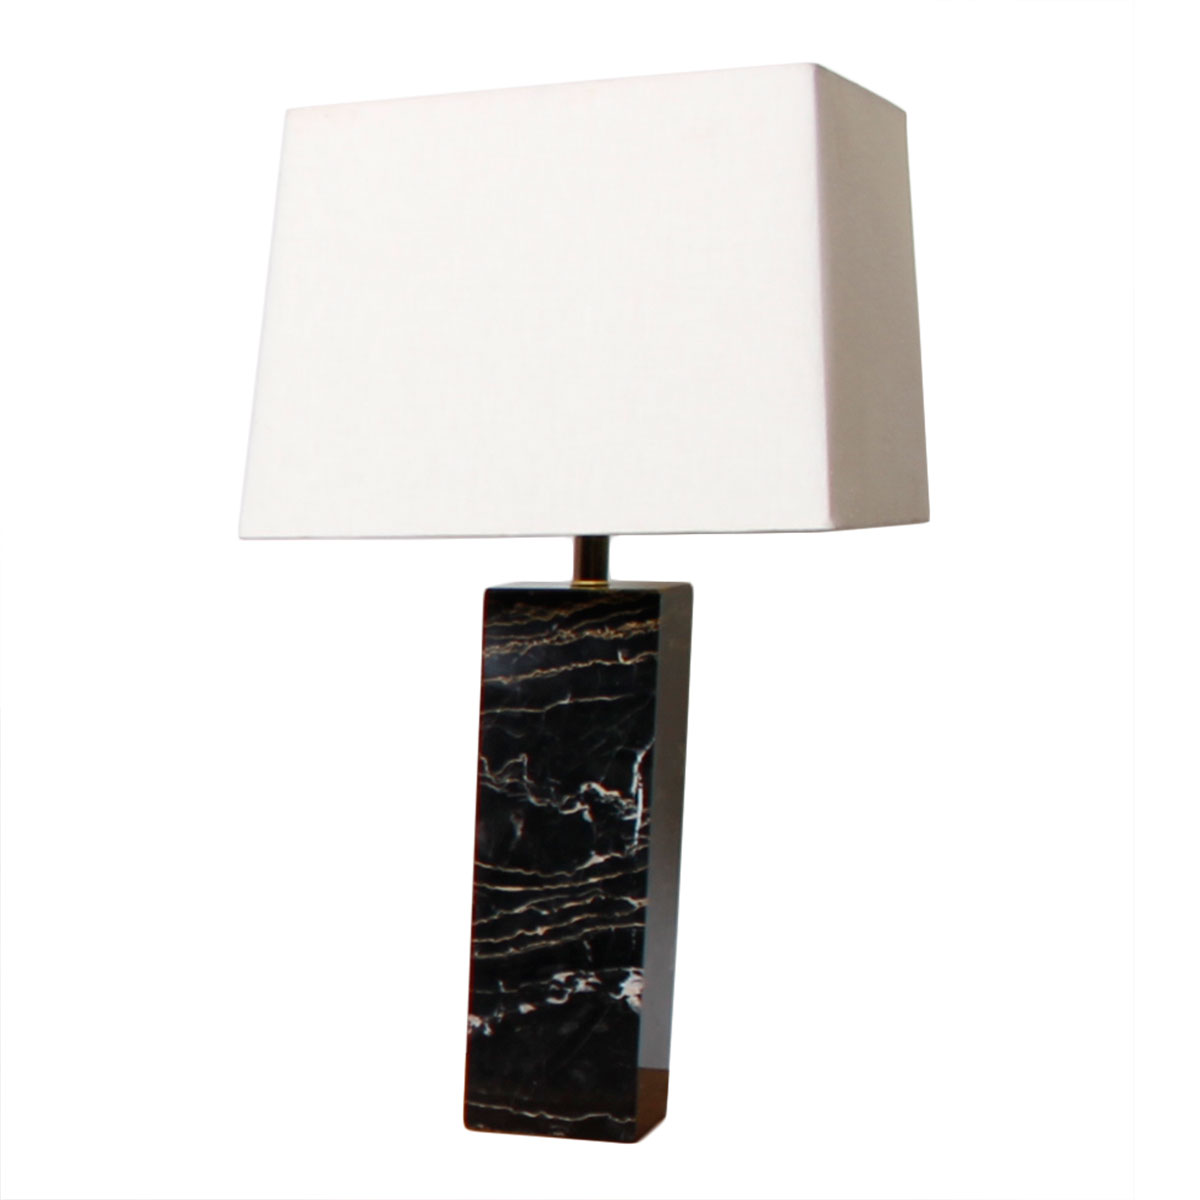 Nessen Studios Marble Table Lamp w/ Square Shade